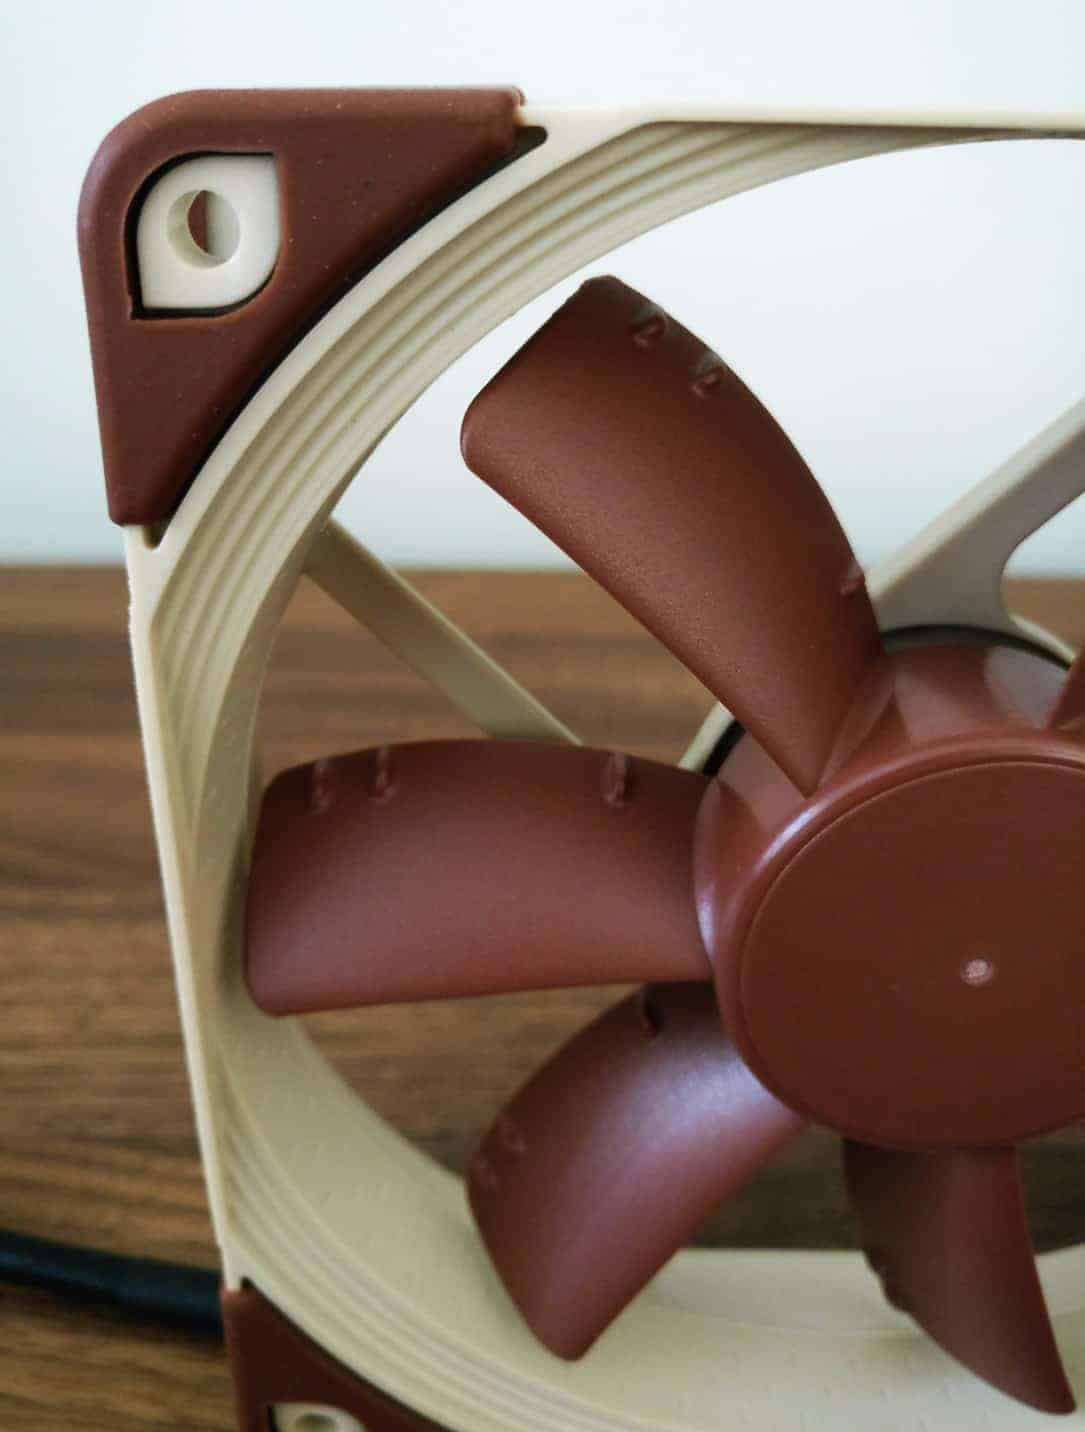 Noctua-Case-Fans-Photos20 Noctua NF-S12A 120mm Case Fan Review